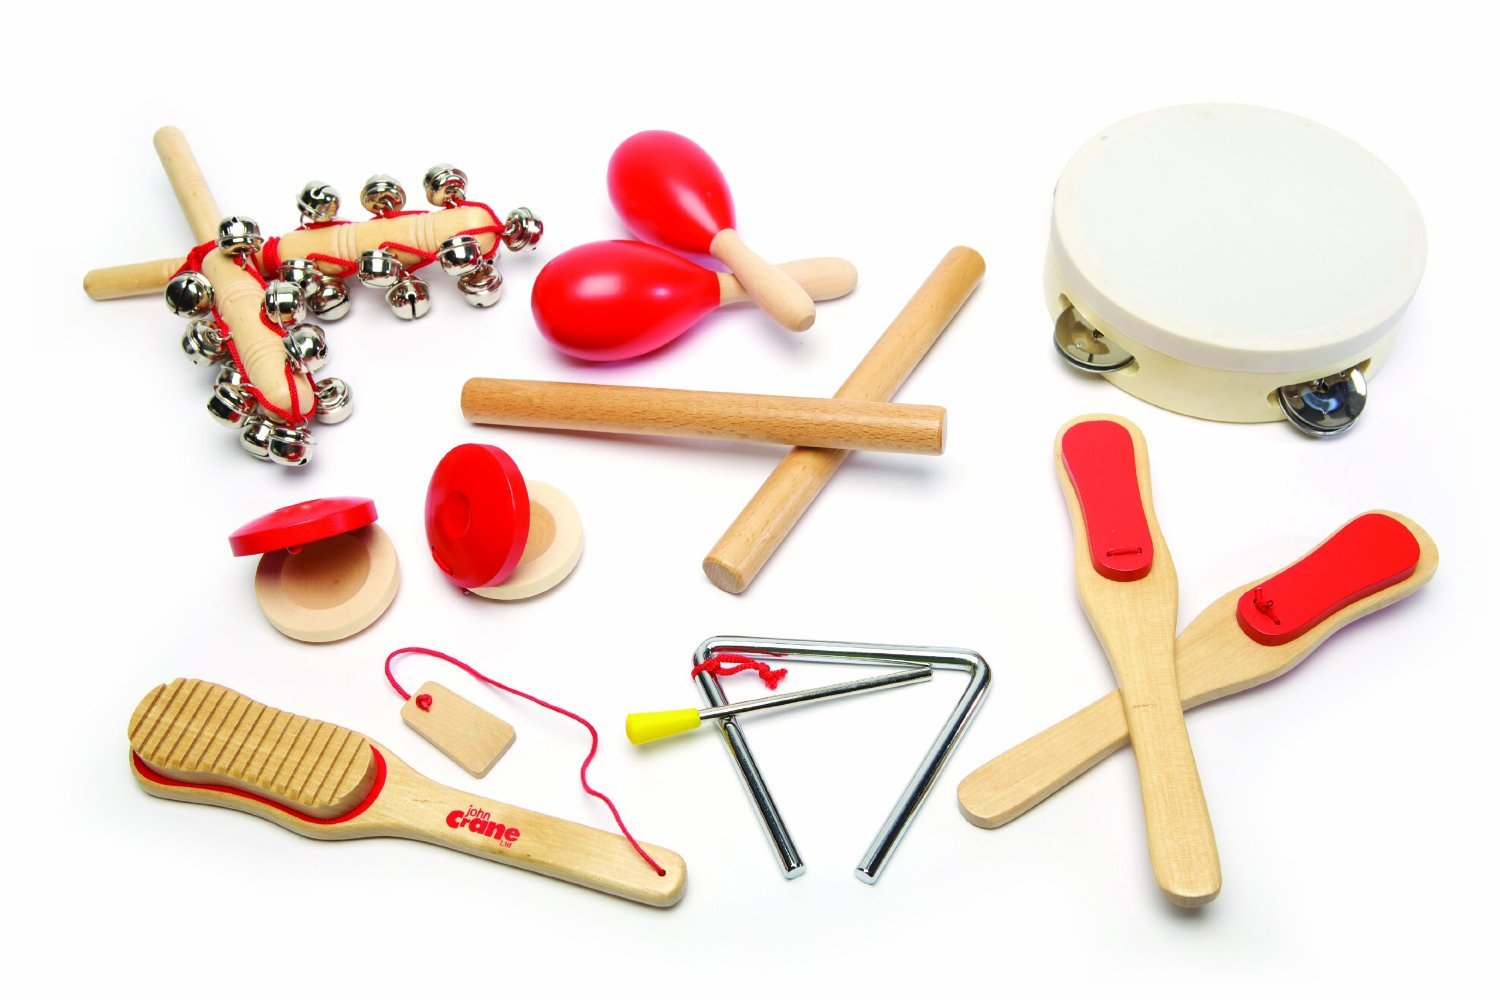 Musical Instruments Toys : Kids musical instruments matttroy